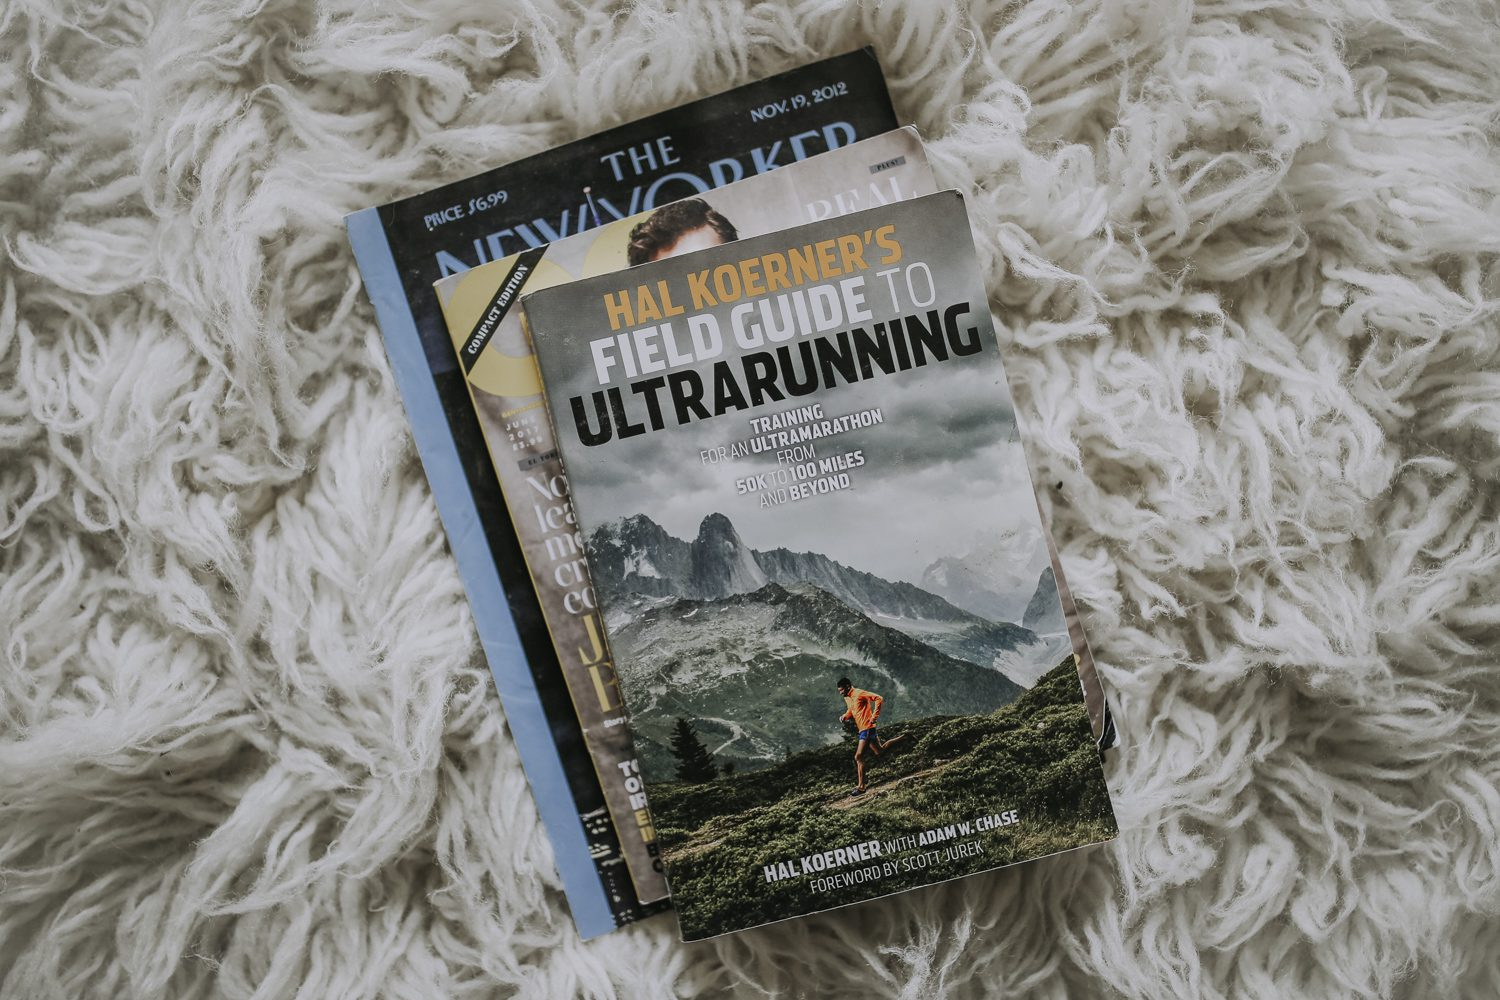 Justin Hunter aka Em Flach books about ultra running